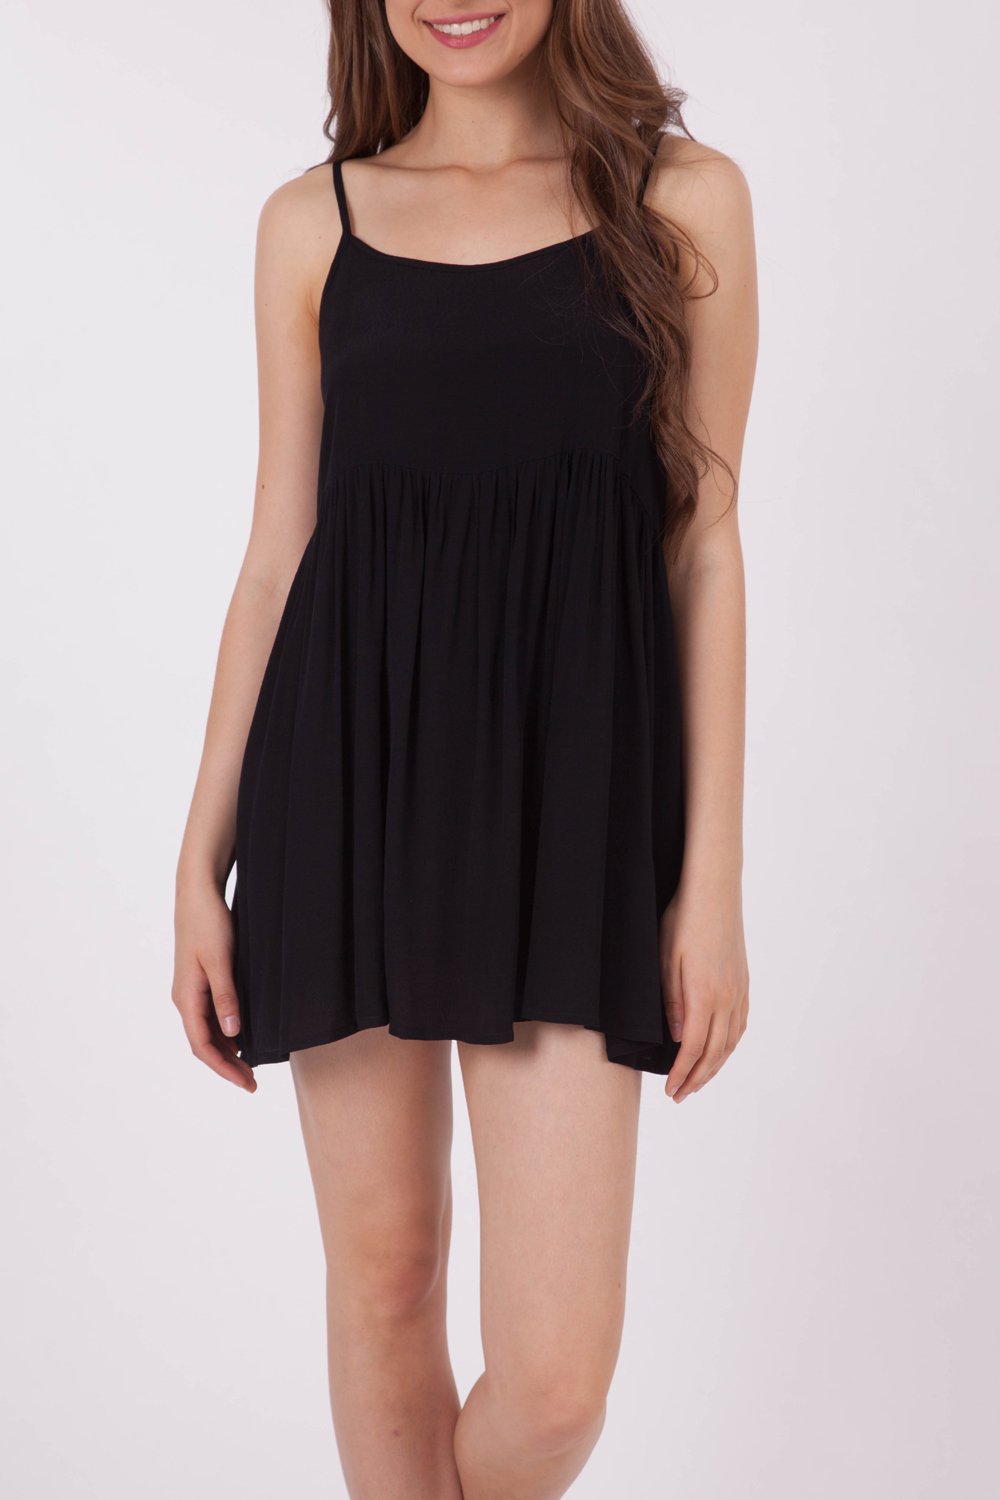 Mink Pink Daiquiri Dress